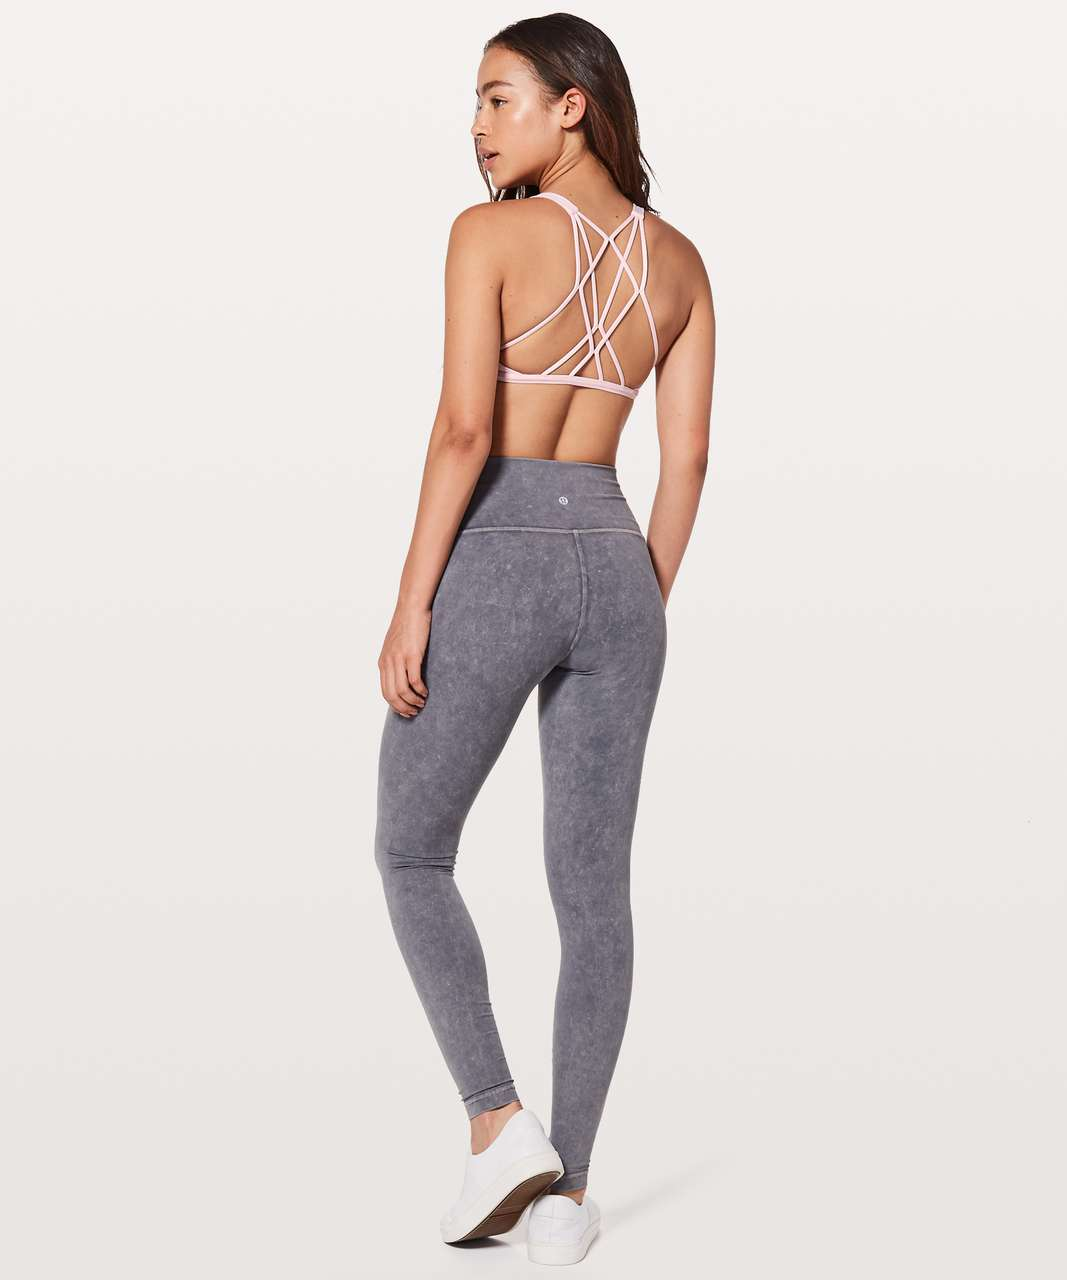 Lululemon Free To Be Zen Bra - Petals